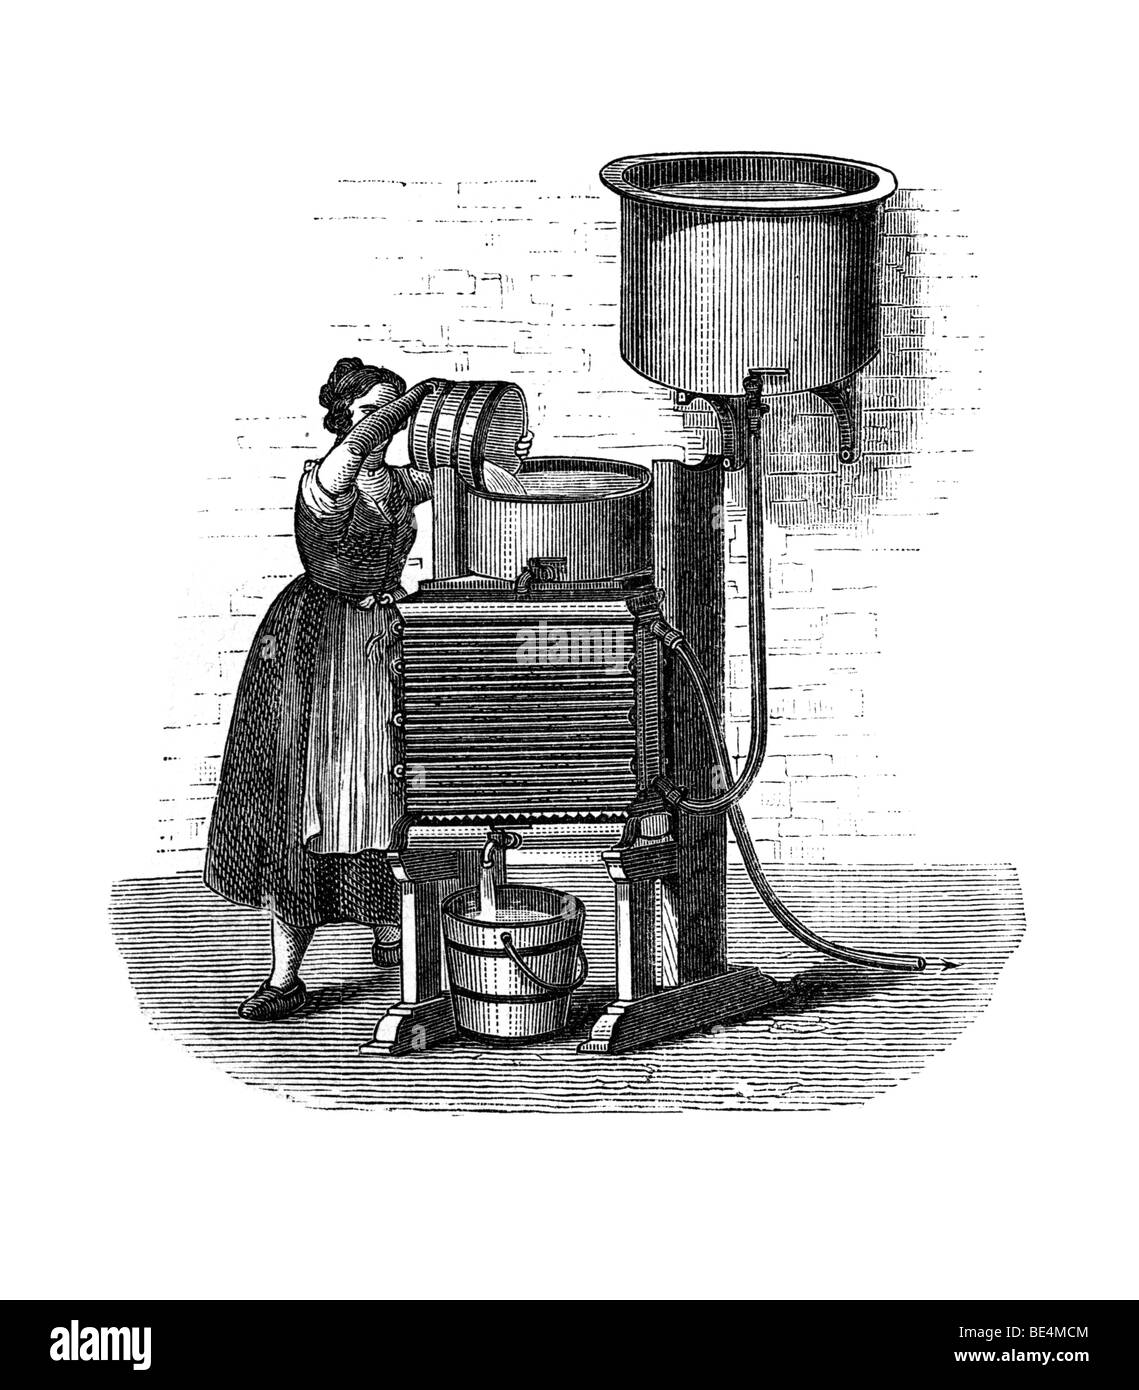 Neubeck'scher milk cooler, historical illustration from: Marie Adenfeller, Friedrich Werner: Illustriertes Koch - Stock Image